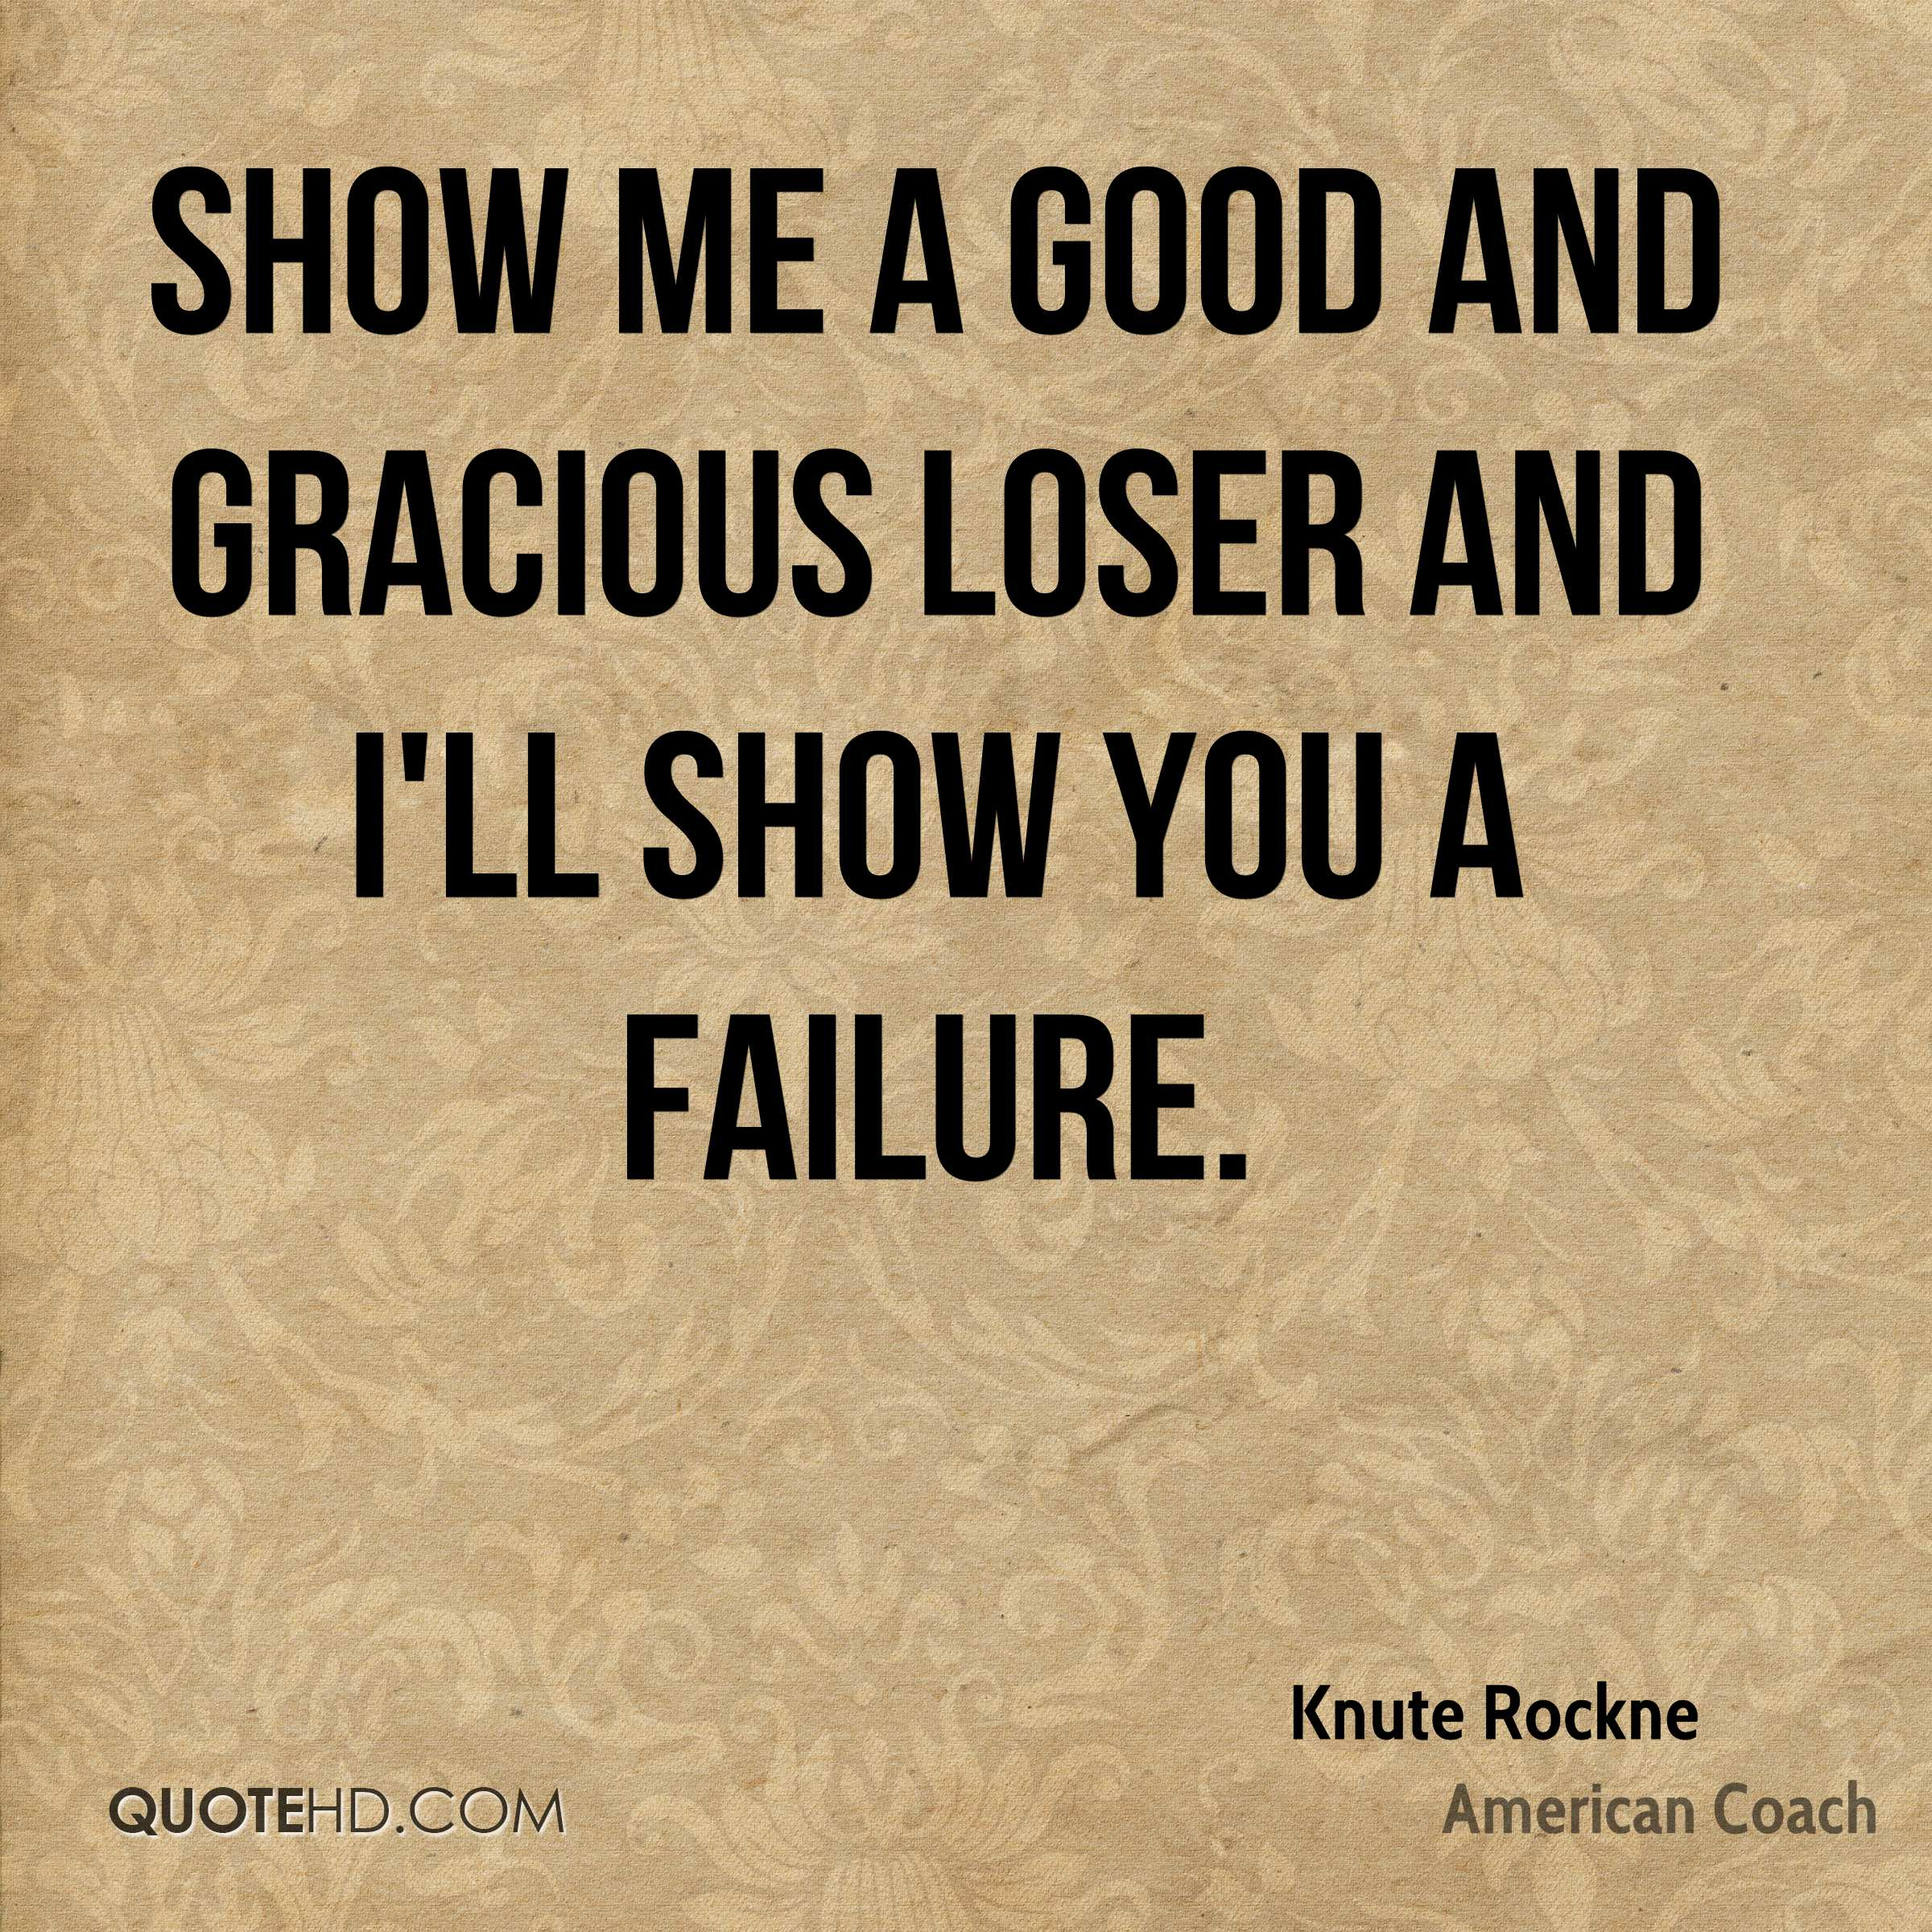 Show me a good and gracious loser and I'll show you a failure.